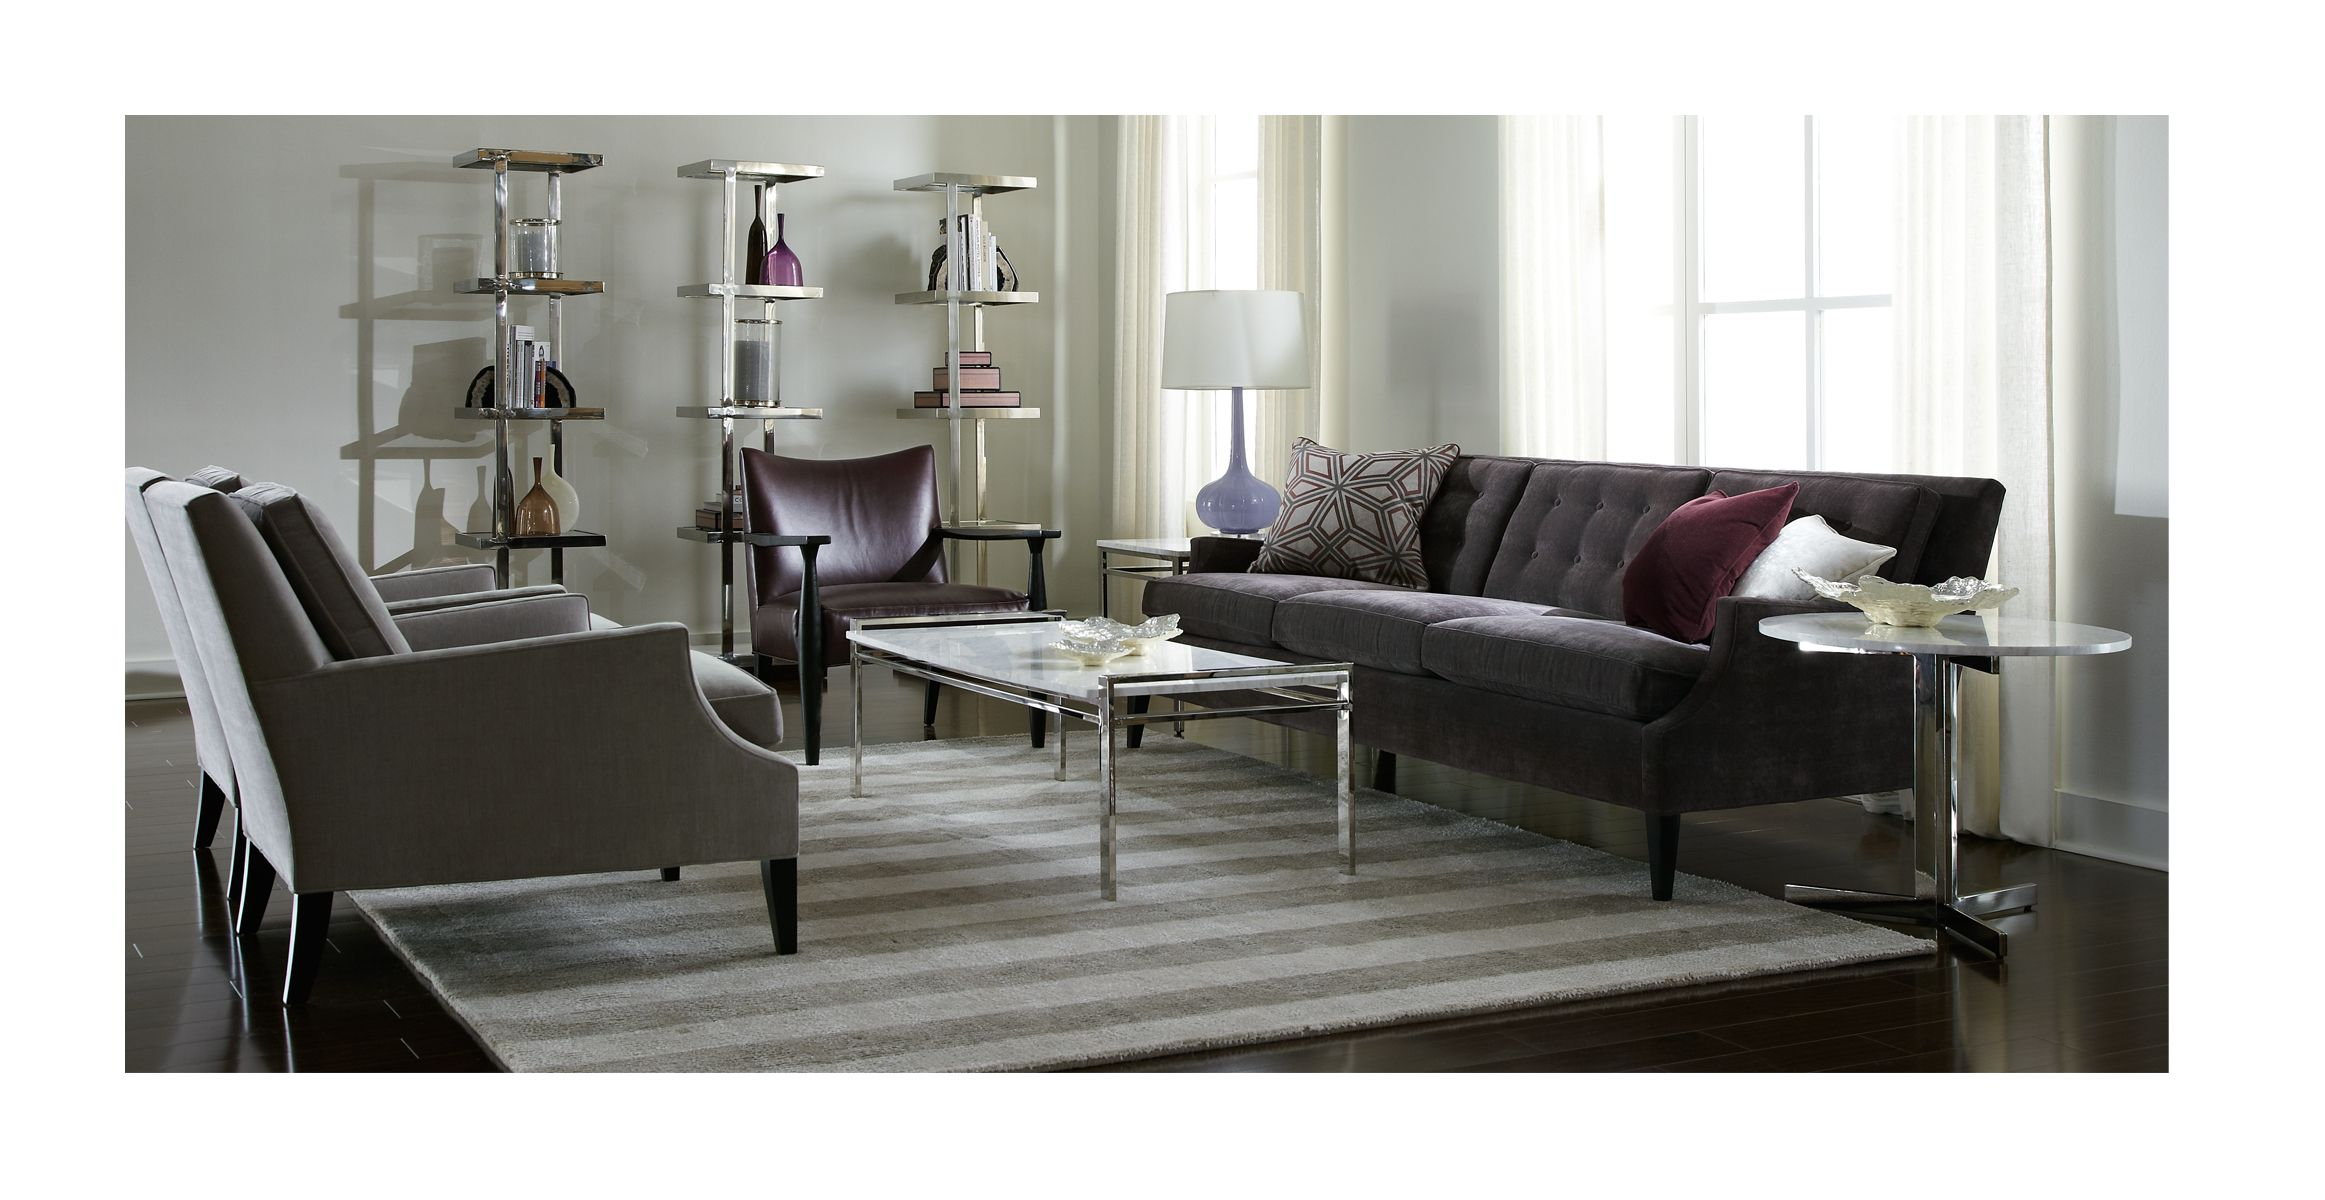 Super Conner 90 Inch Sofa Mitchell Gold Bob Williams Onthecornerstone Fun Painted Chair Ideas Images Onthecornerstoneorg